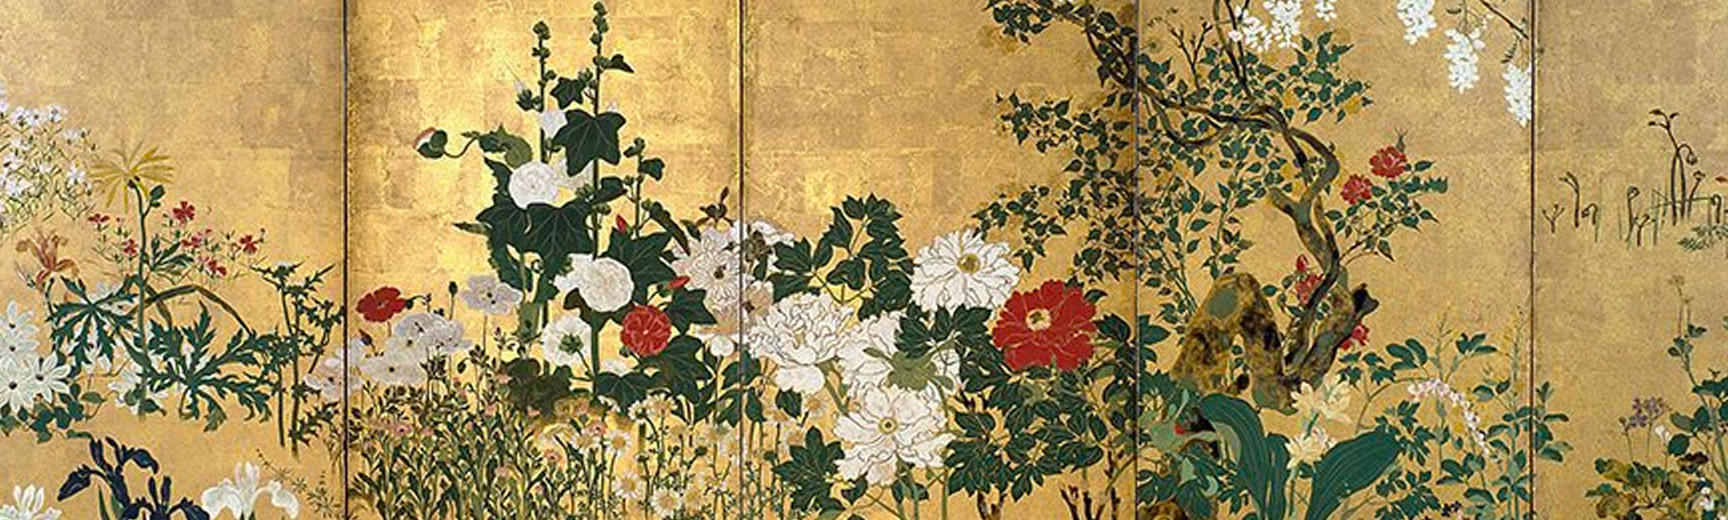 Artwork with colourful red and white flowers on a golden background